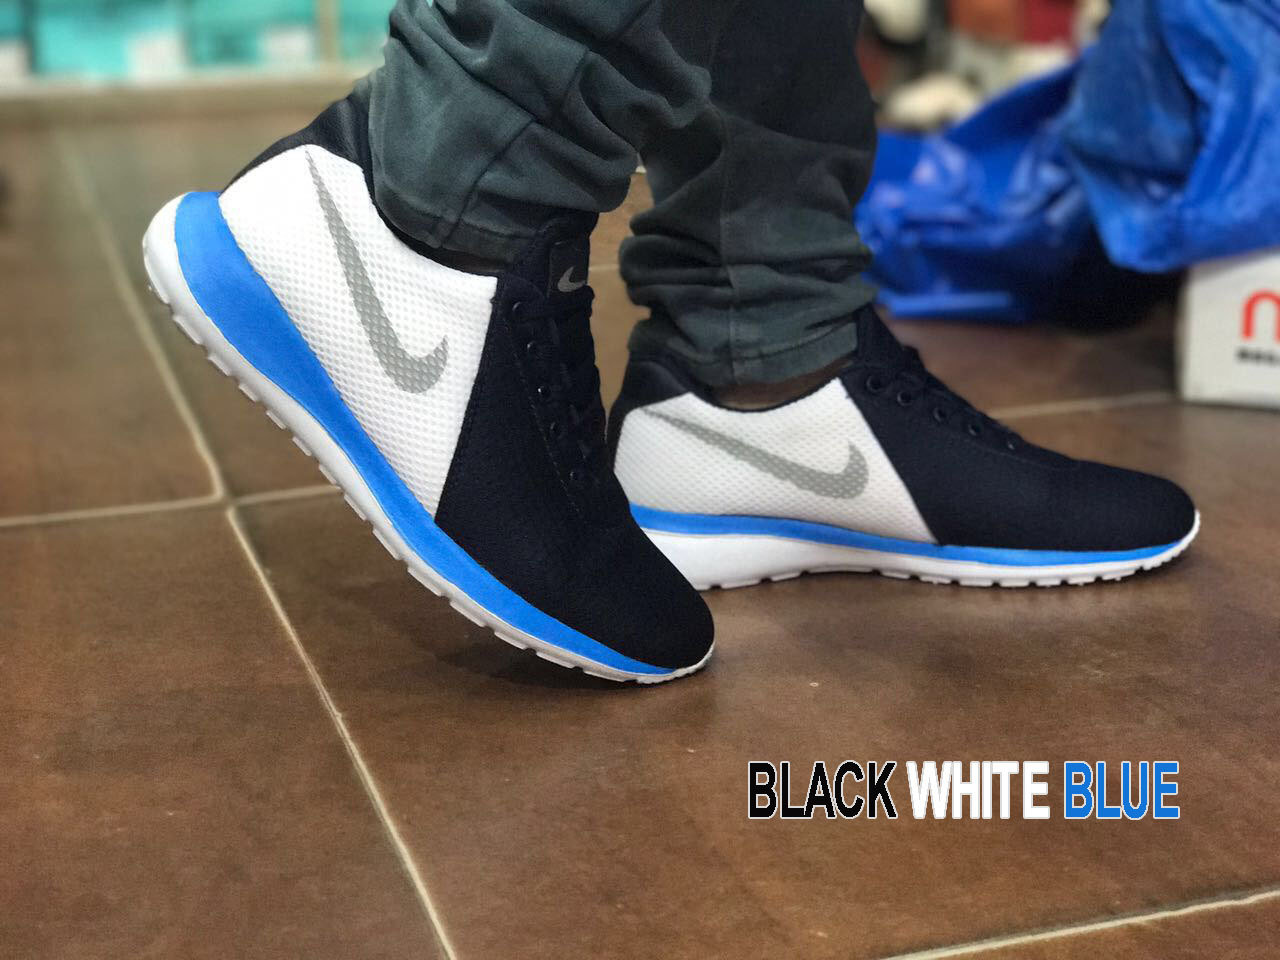 Excepcional Carteles probable  Nike Magnet Shoes For Men's - Imported